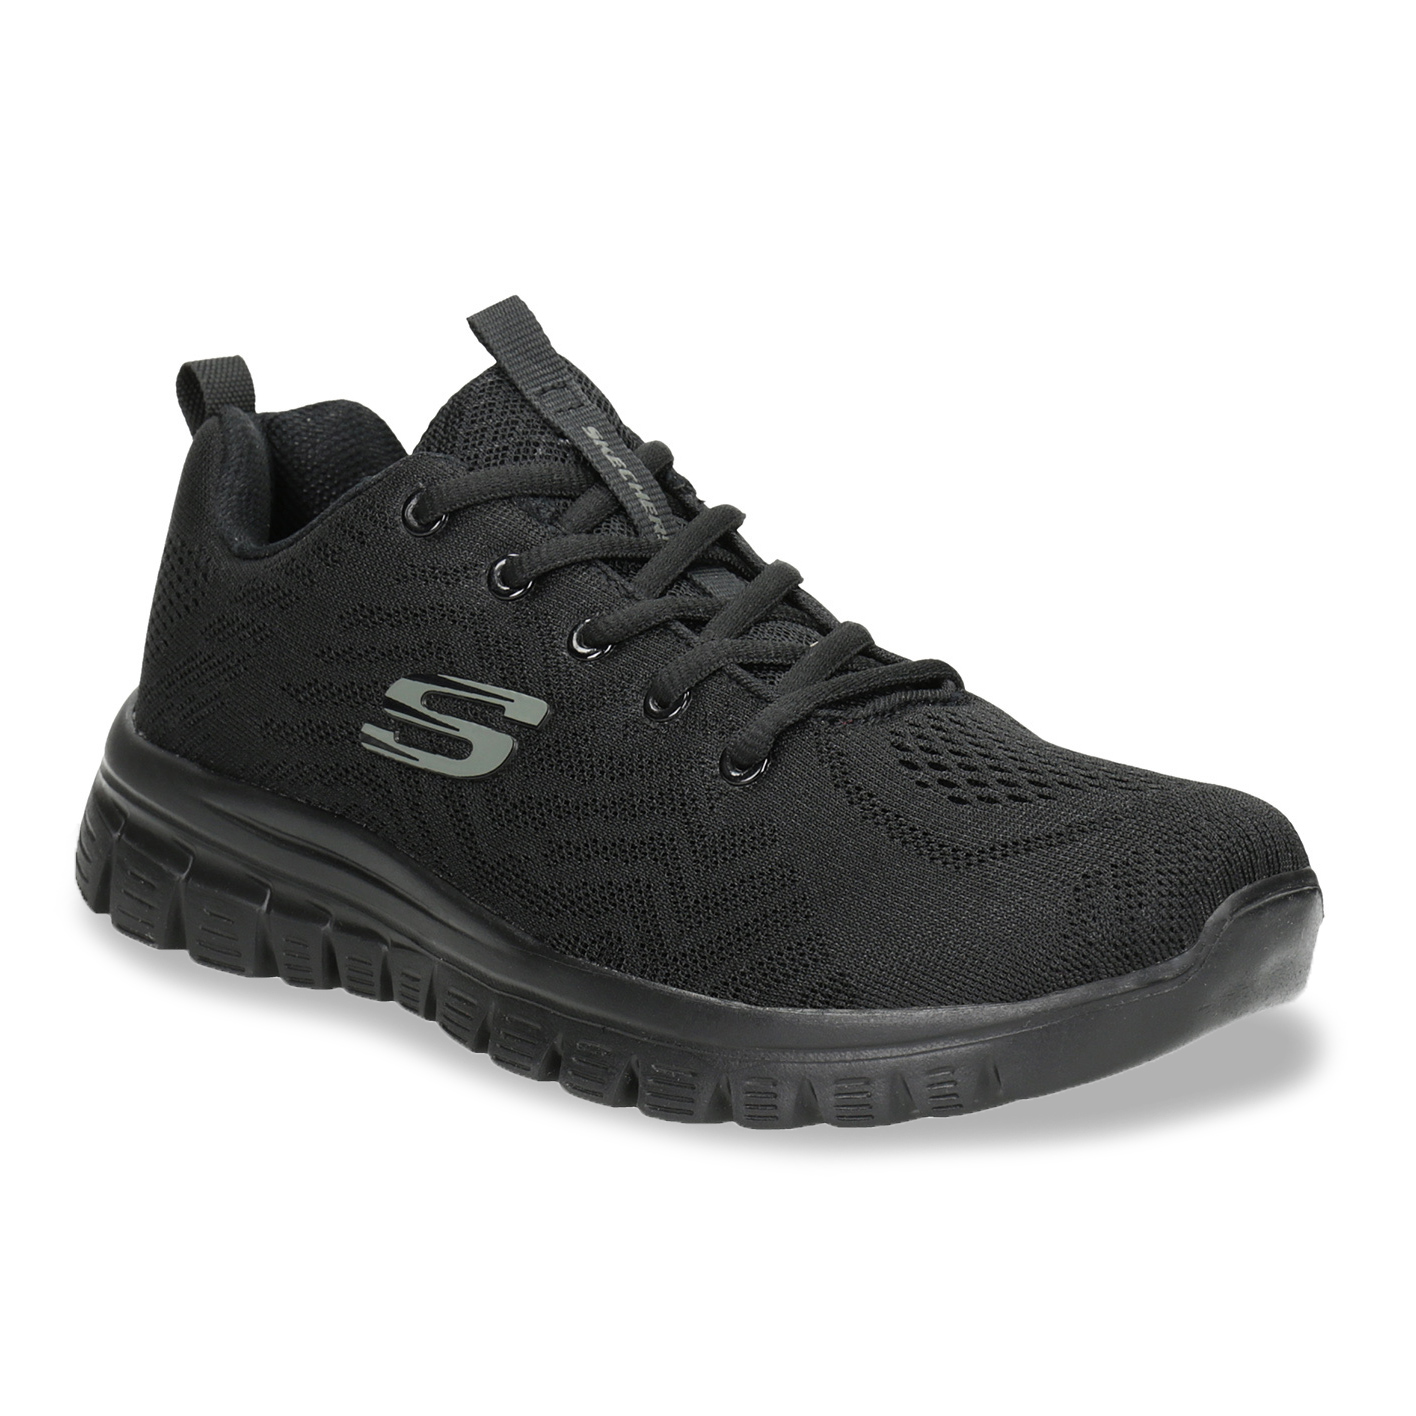 Skechers Black Athletic Sneakers with